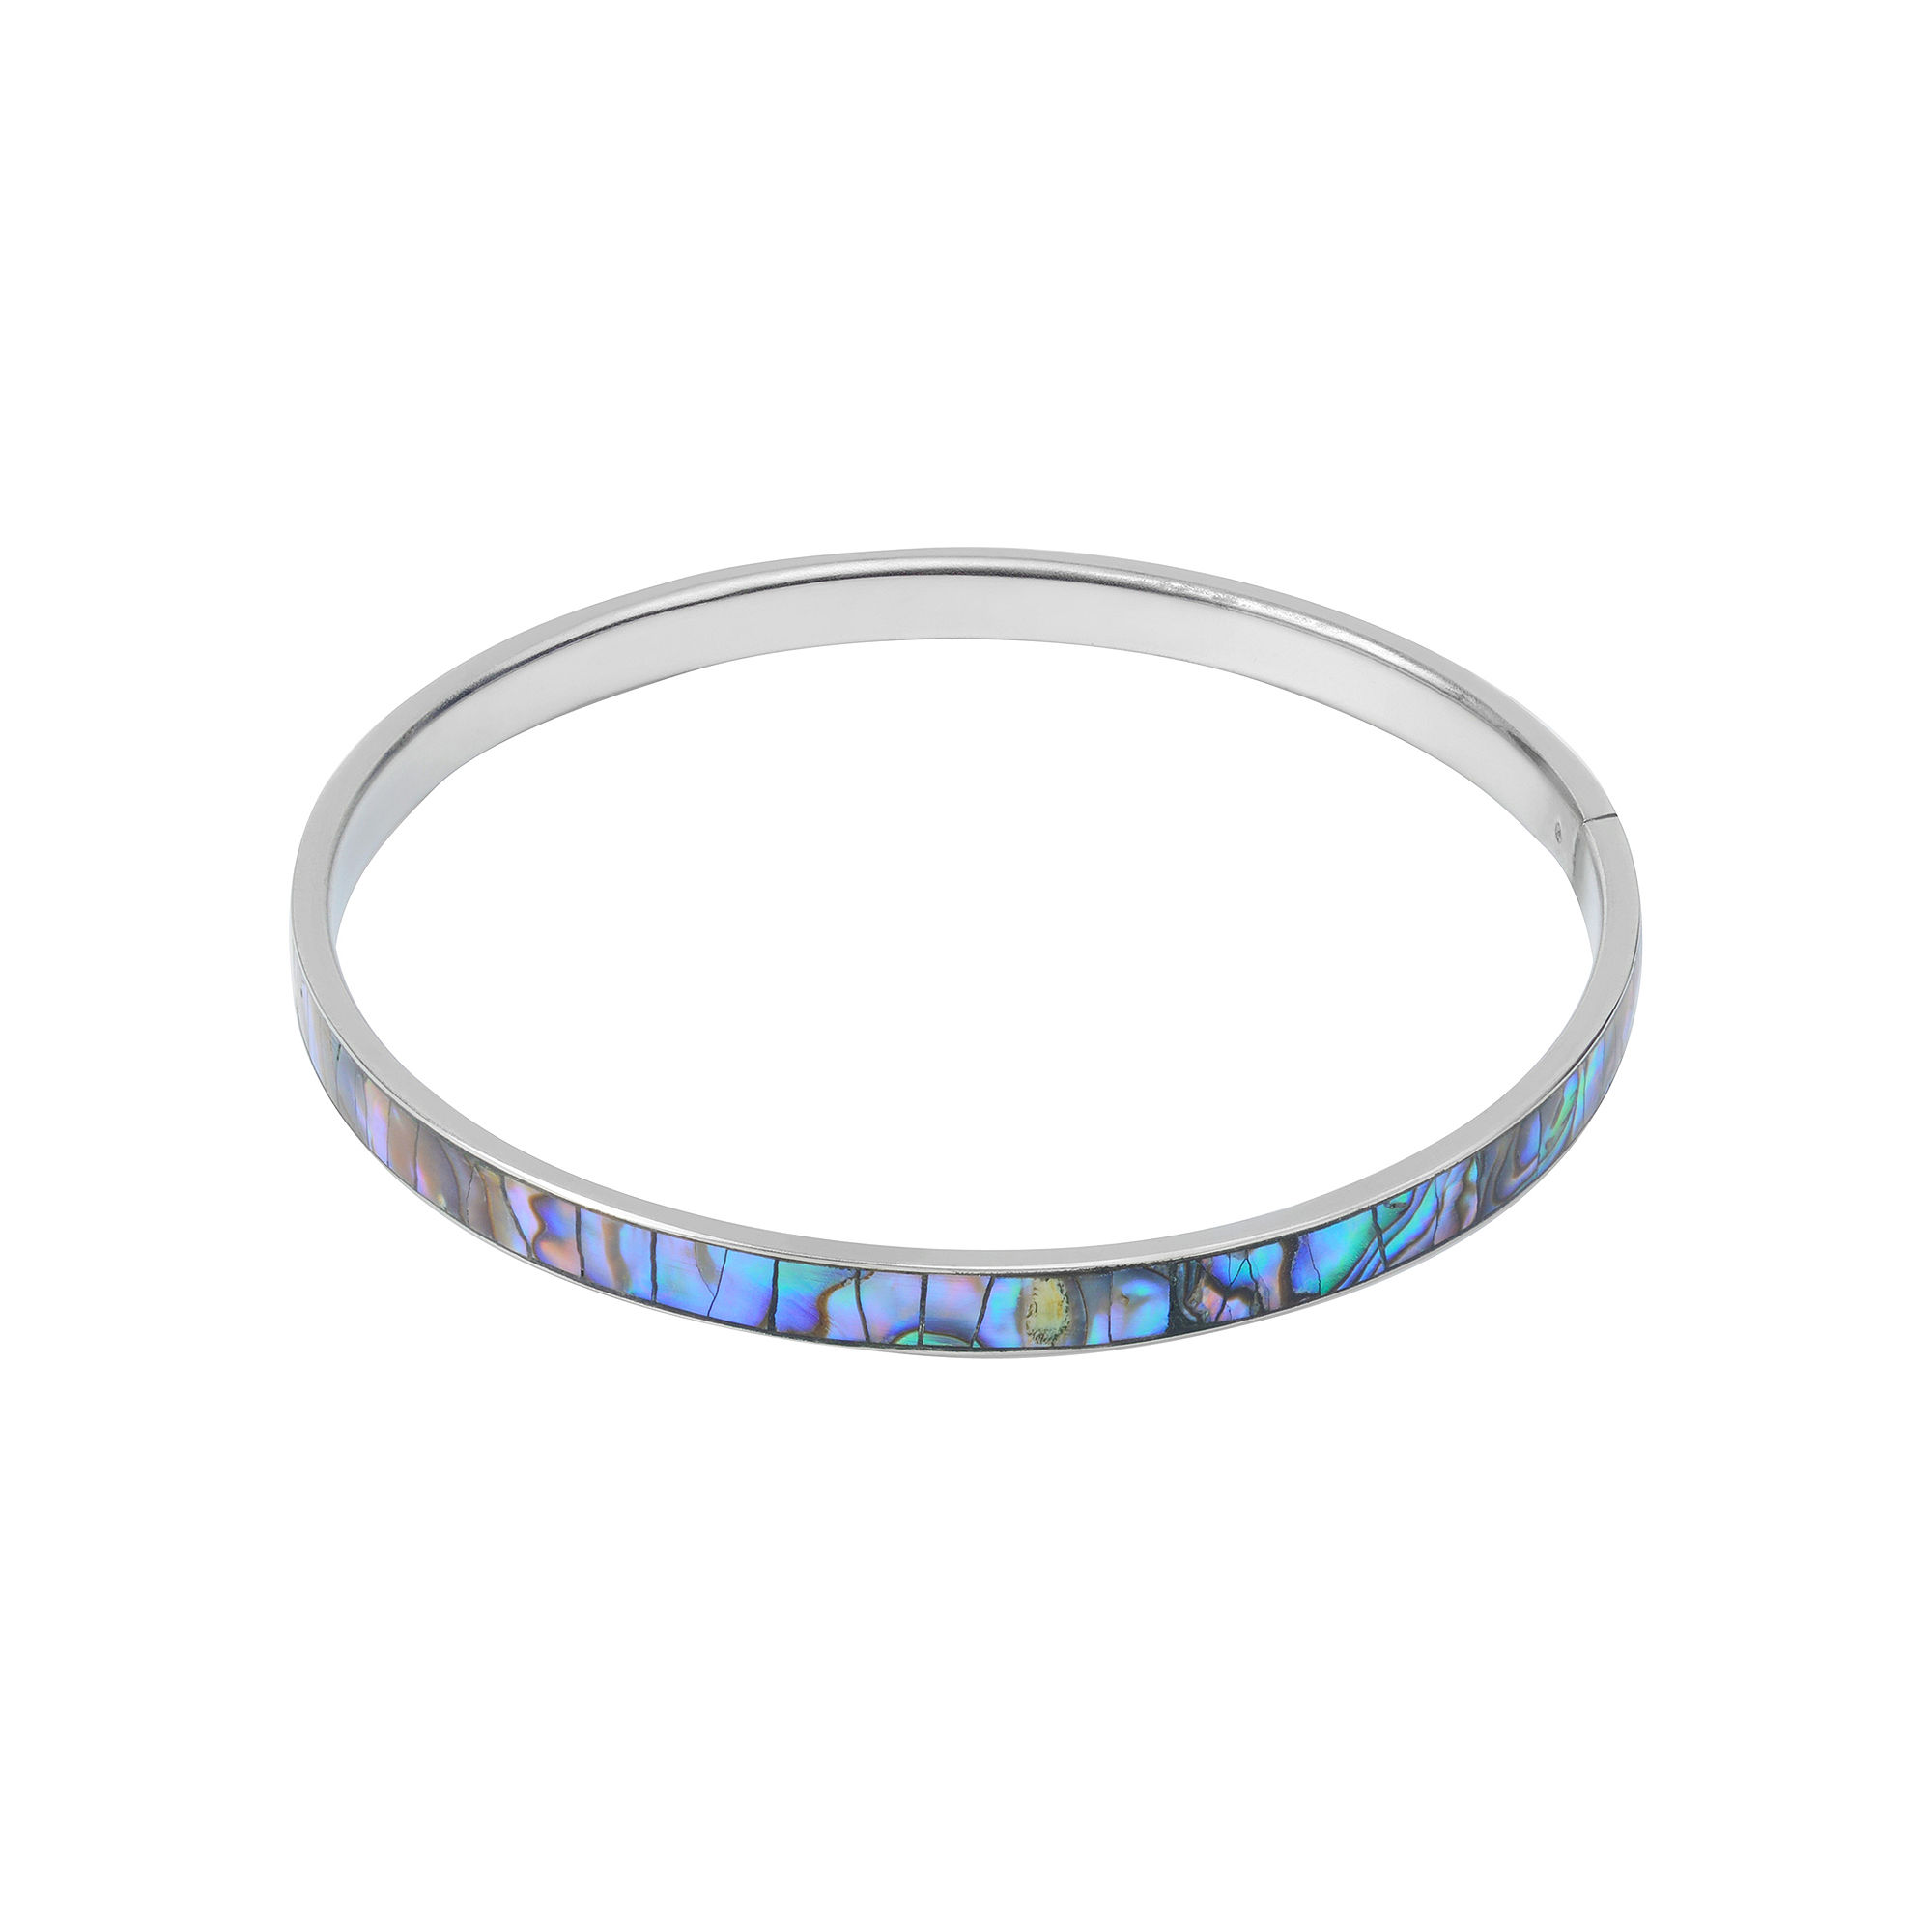 Simulated Abalone Sterling Silver Bangle Bracelet